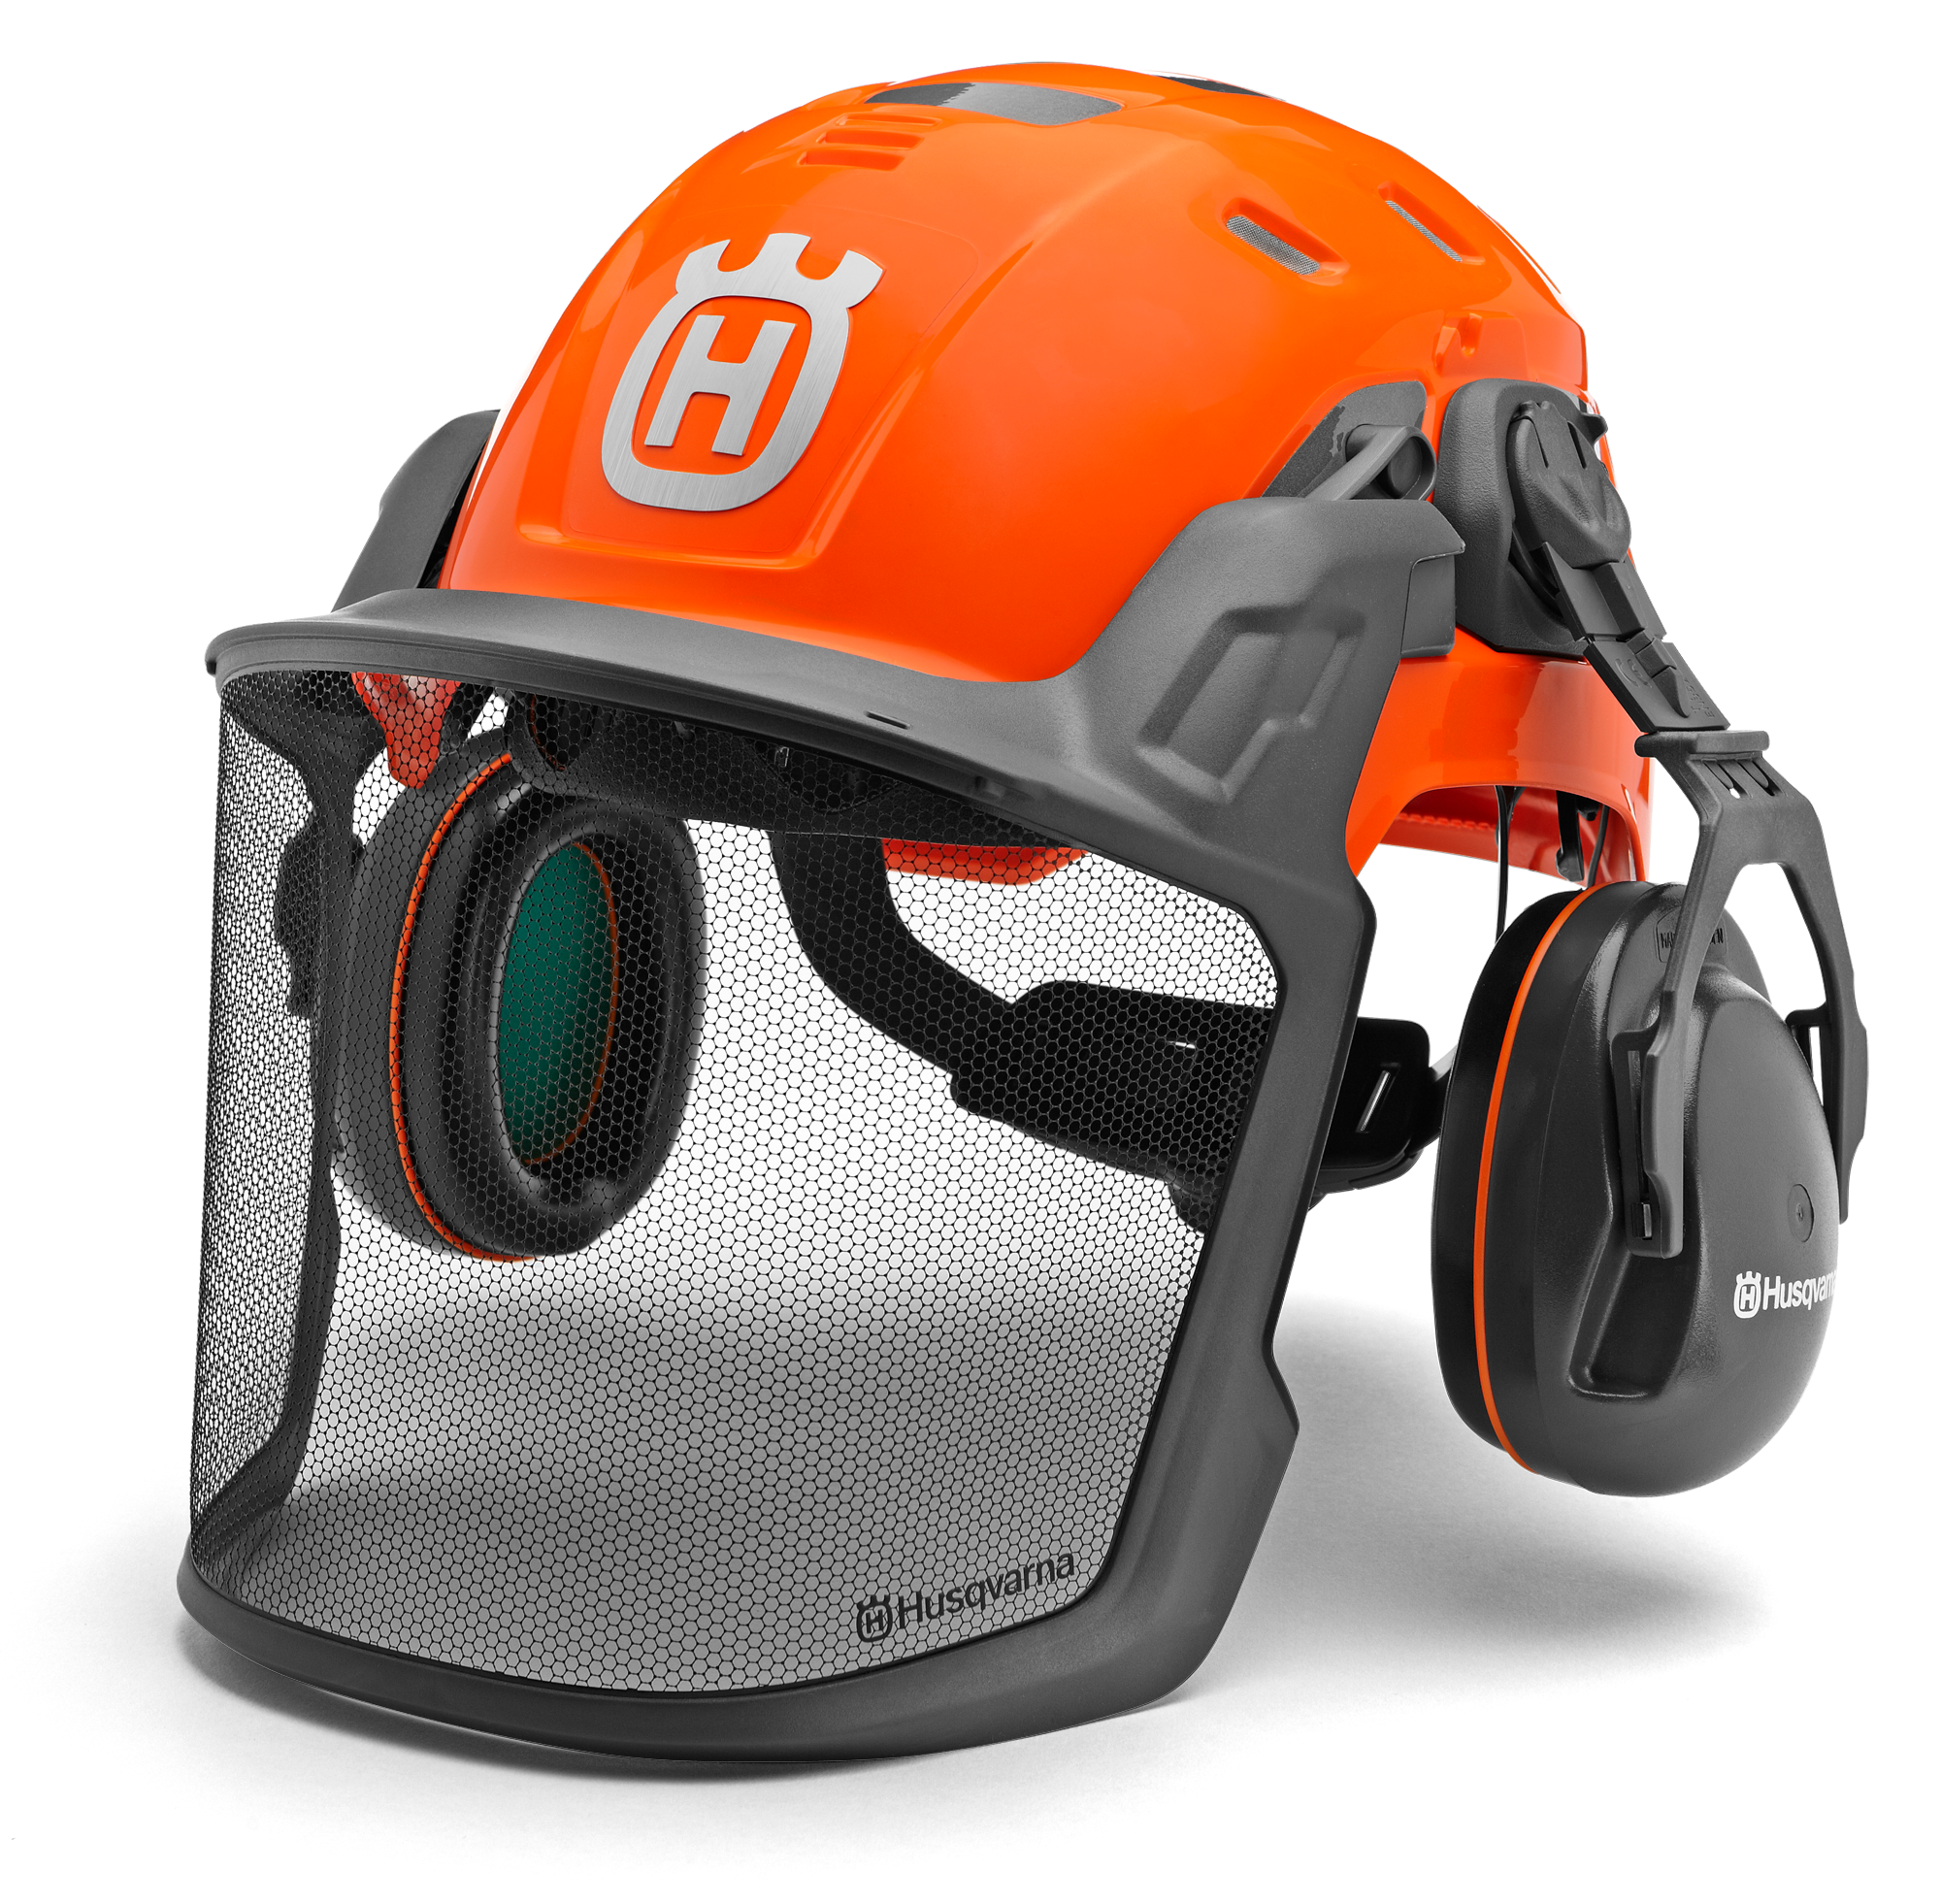 Image for Technical Forest Helmet                                                                                                          from HusqvarnaB2C